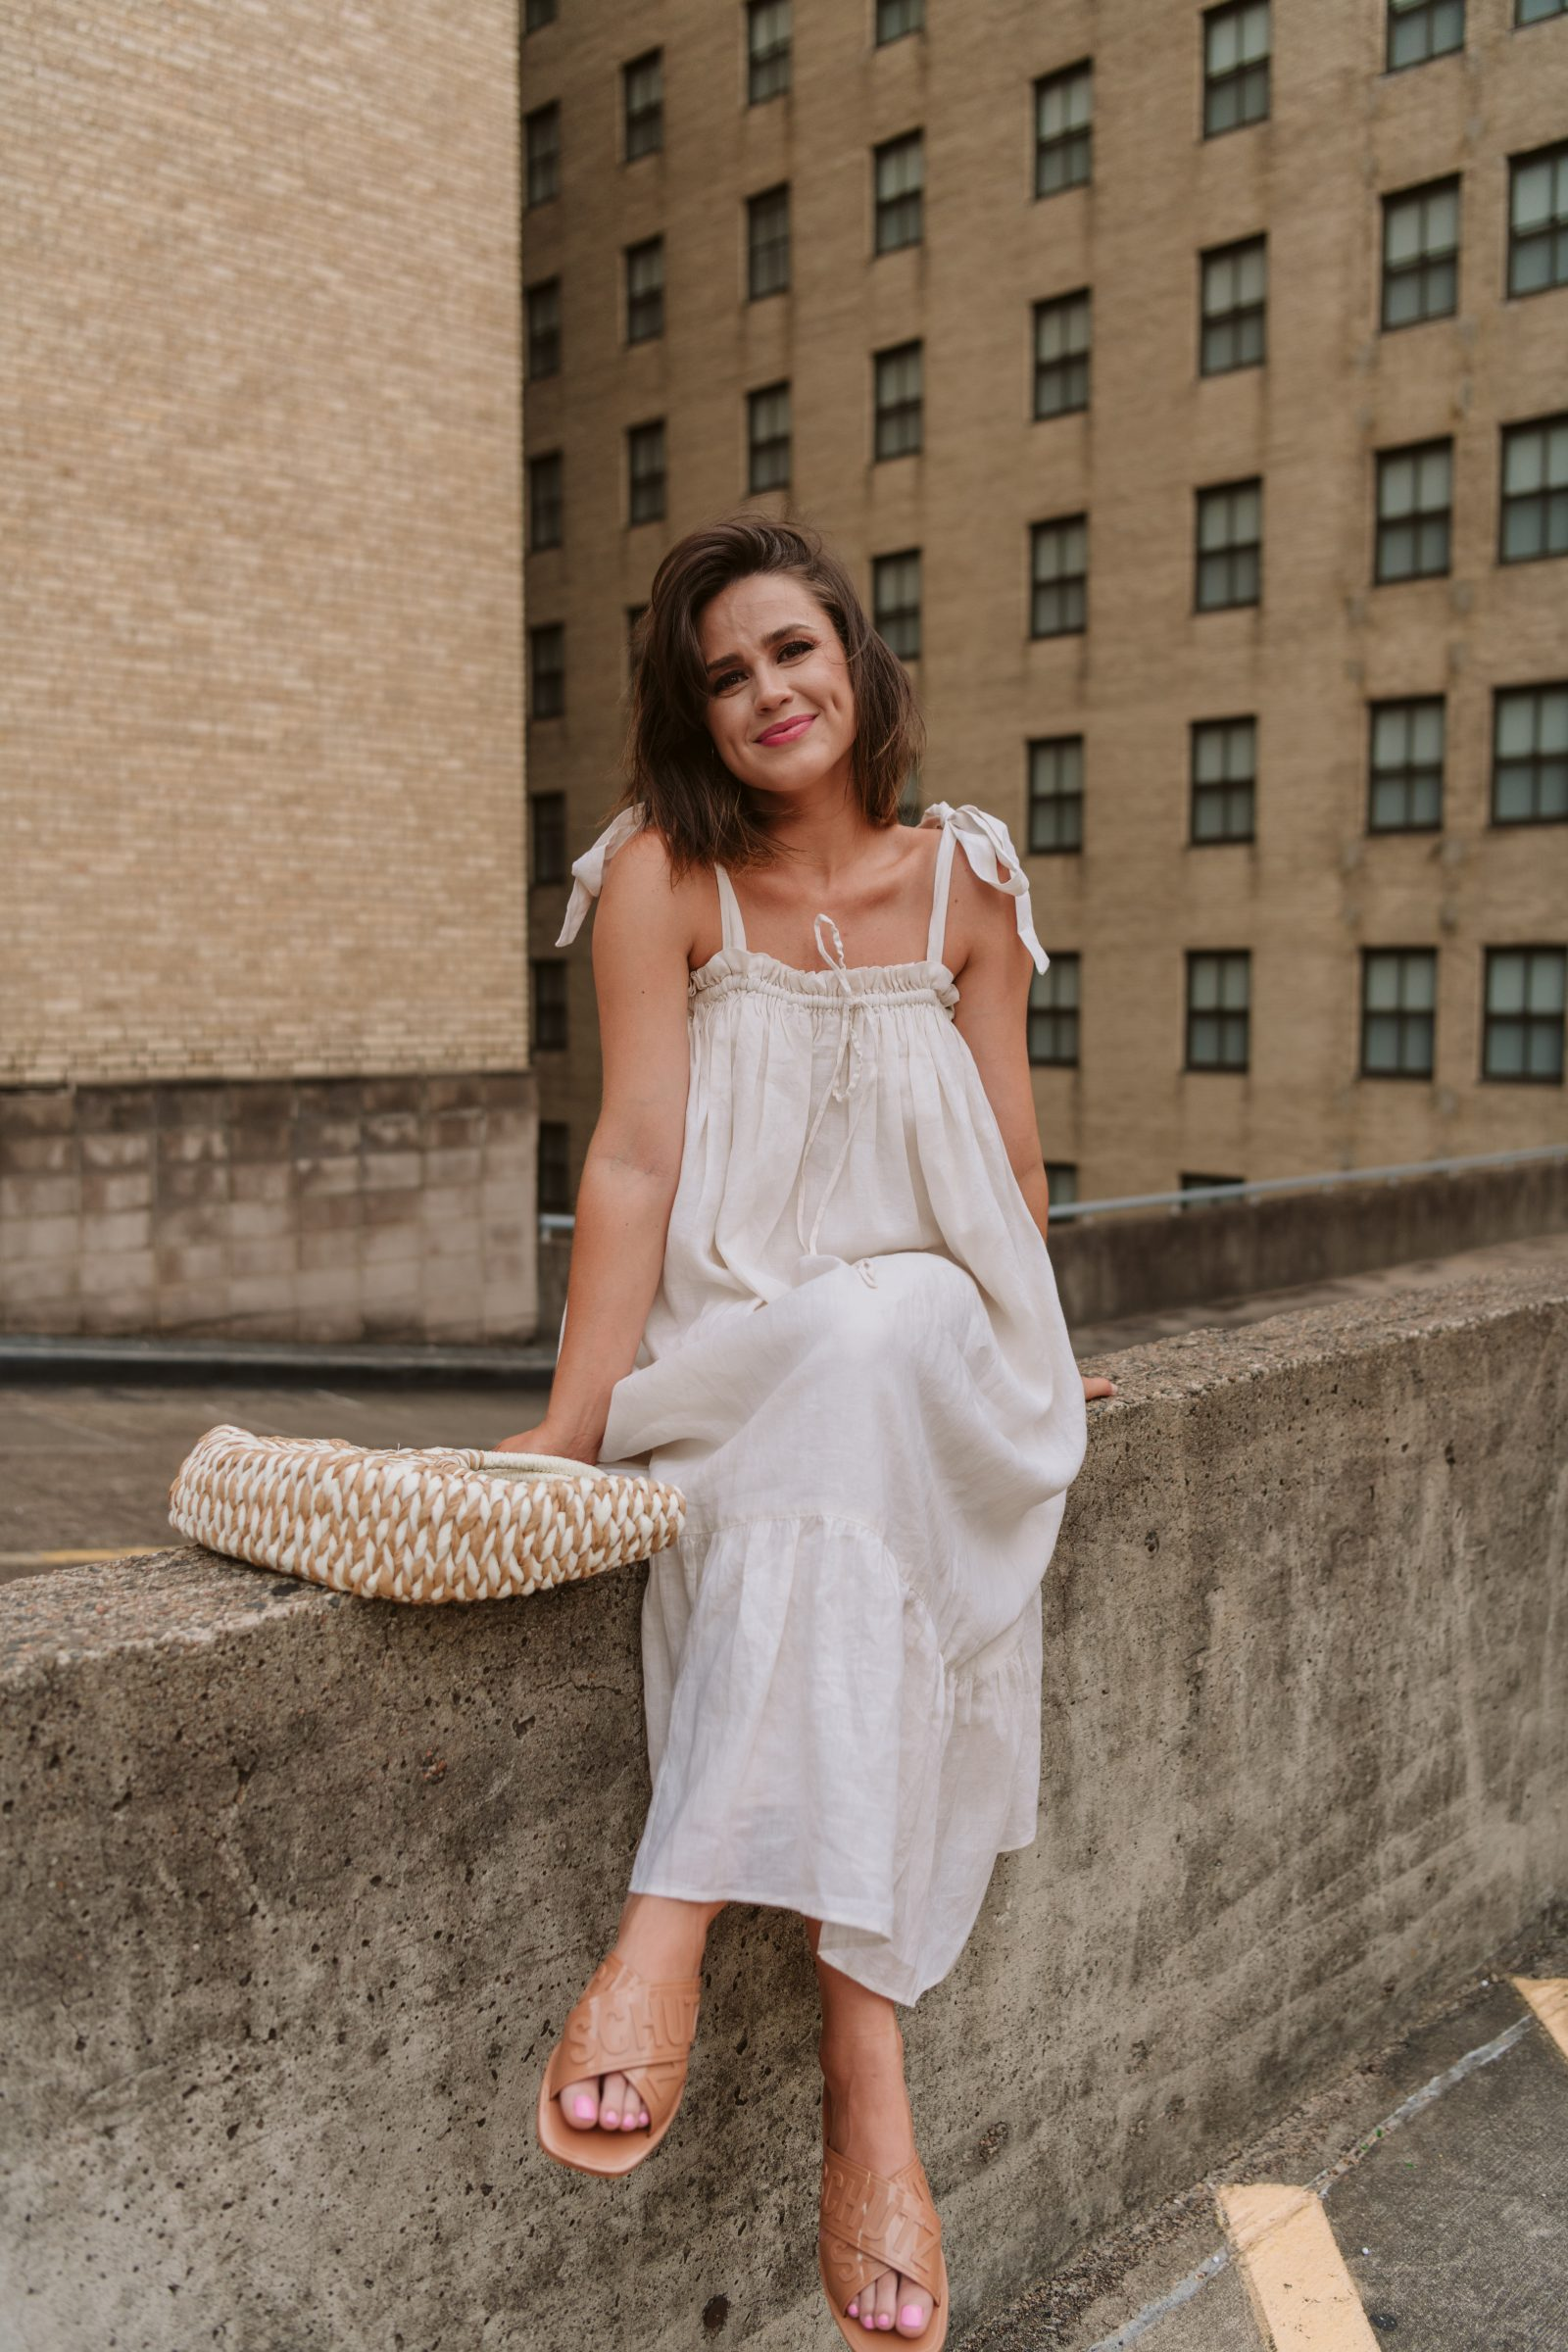 Houston Fashion Blogger Elly Brown wears a linen Summer dress with jelly slides for a fresh summer look!